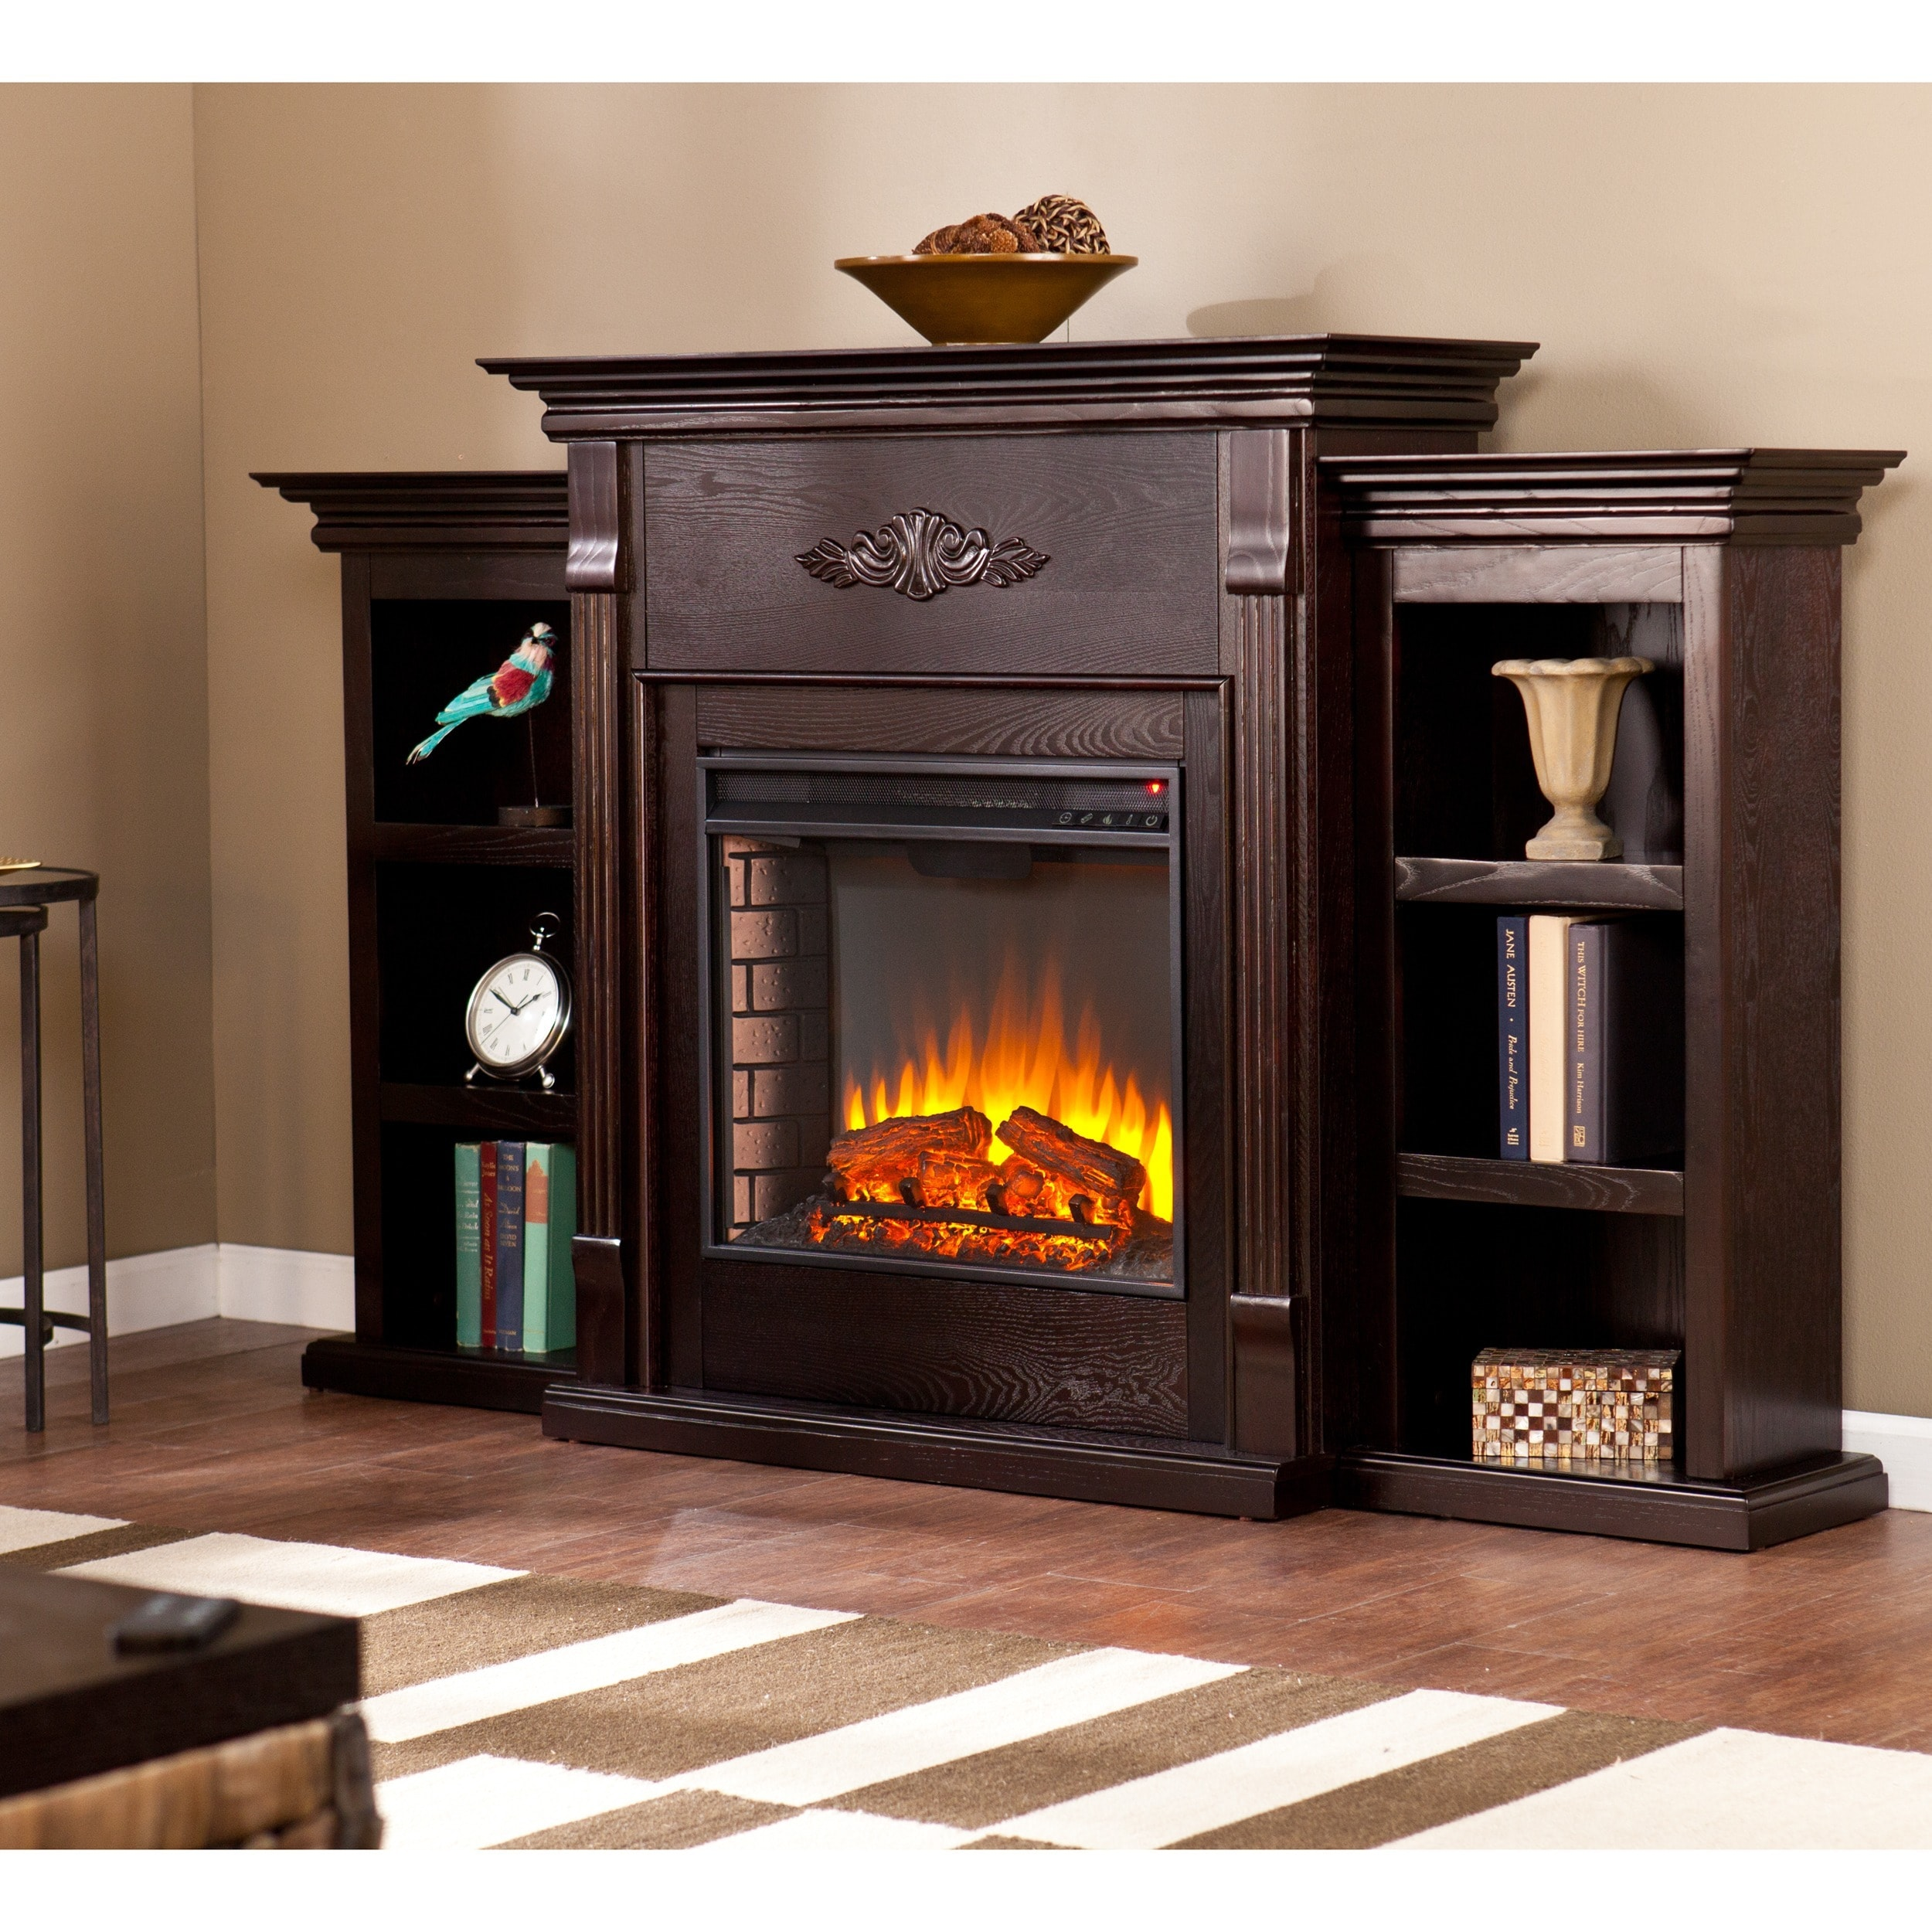 Electric Fireplace.com Gracewood Hollow Forbes 70 Inch Espresso Electric Fireplace